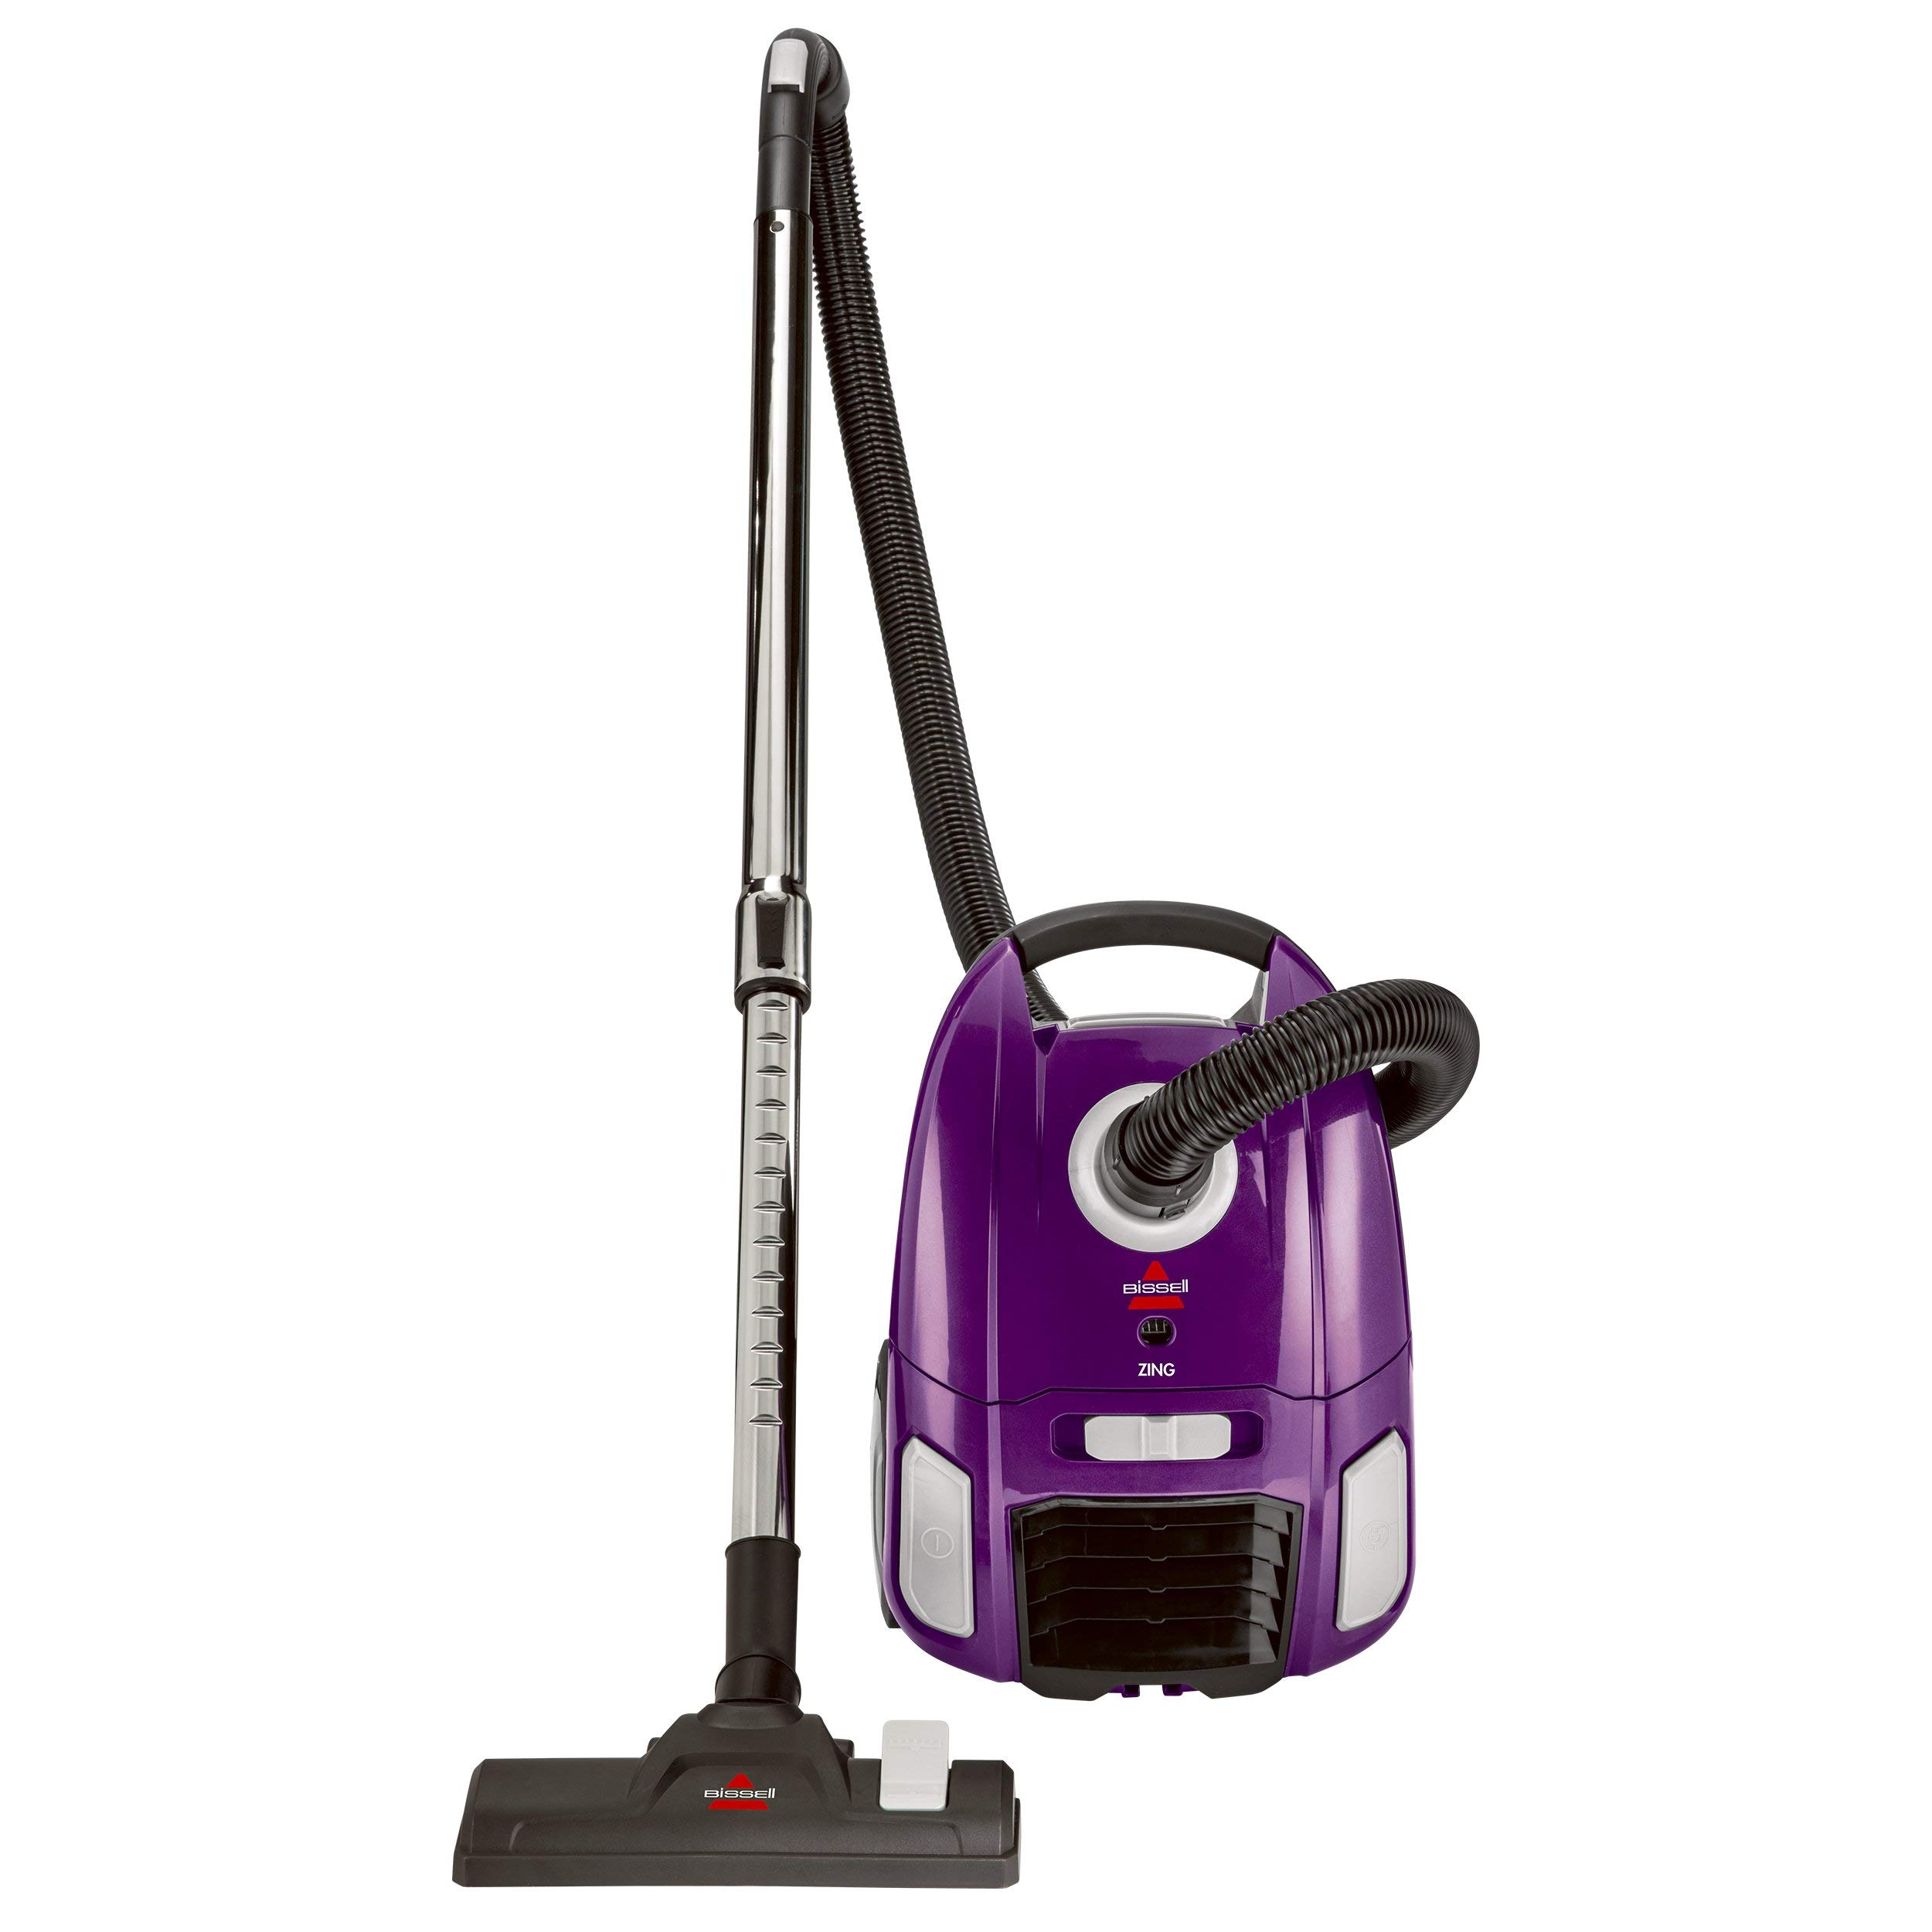 BISSELL Zing Lightweight, Bagged Canister Vacuum, Purple, 2154A (Renewed) by Bissell